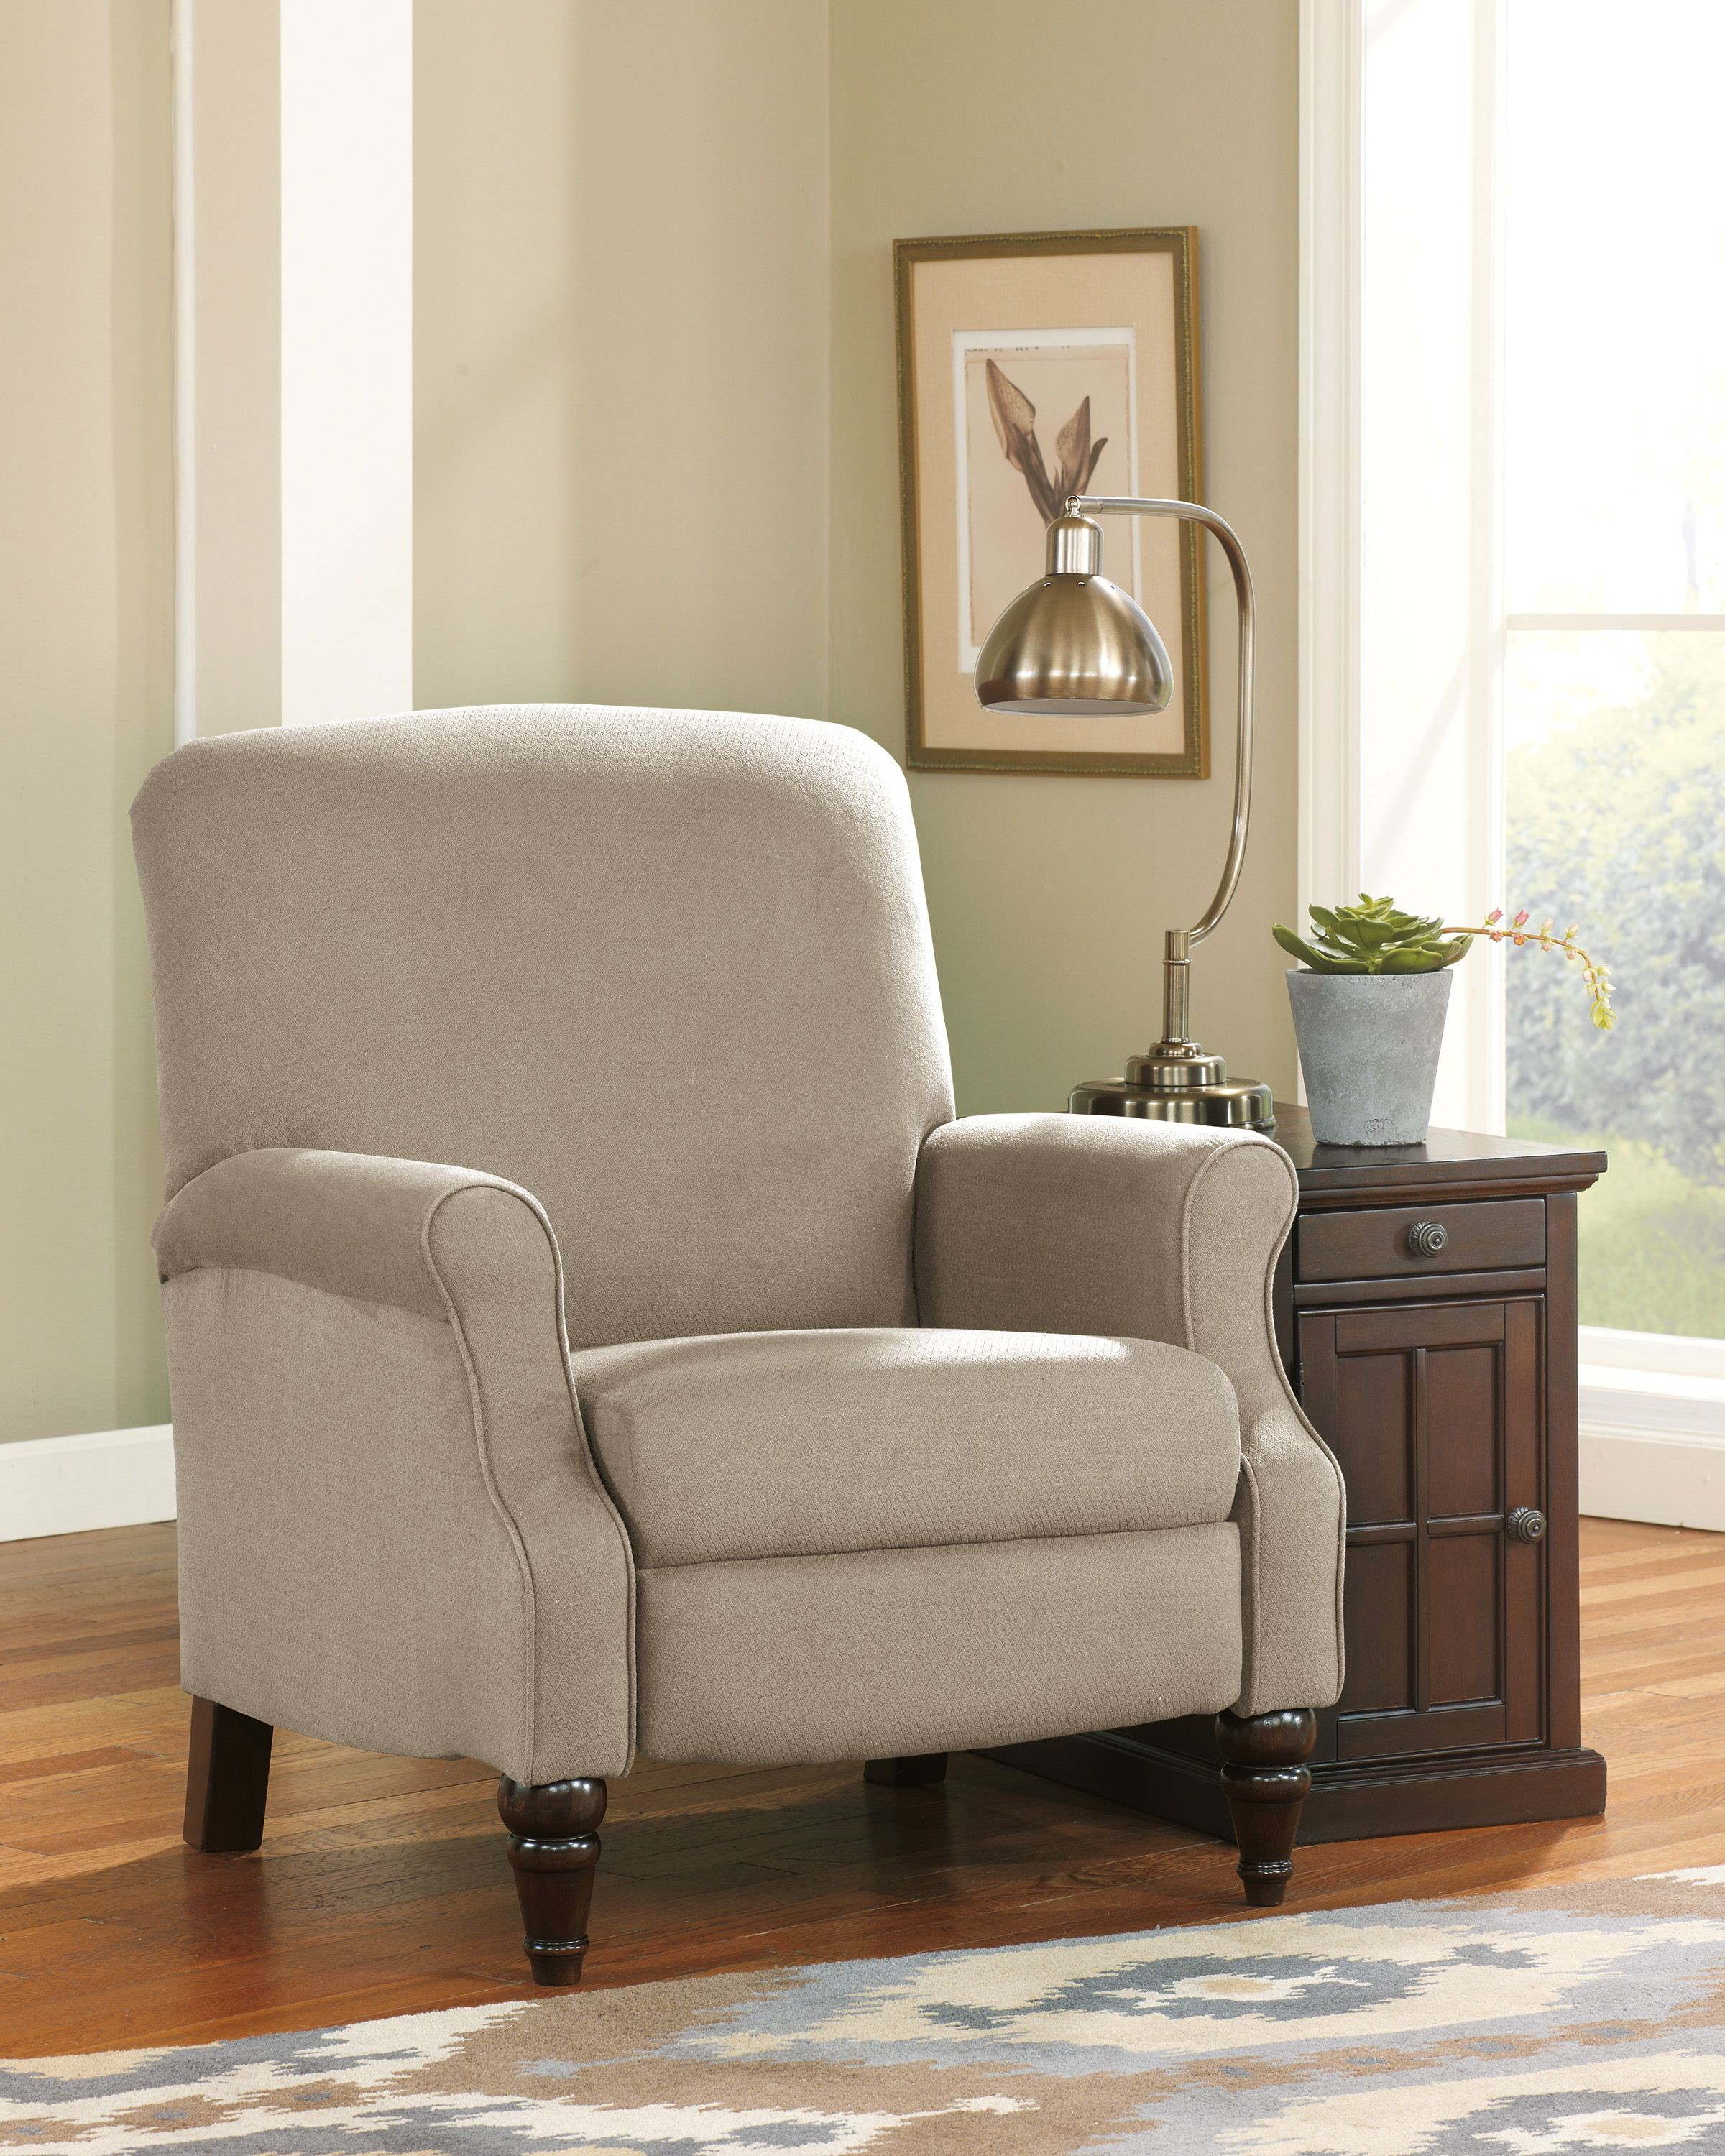 Placido Khaki Accent Chair with Arms by Ashley Furniture at